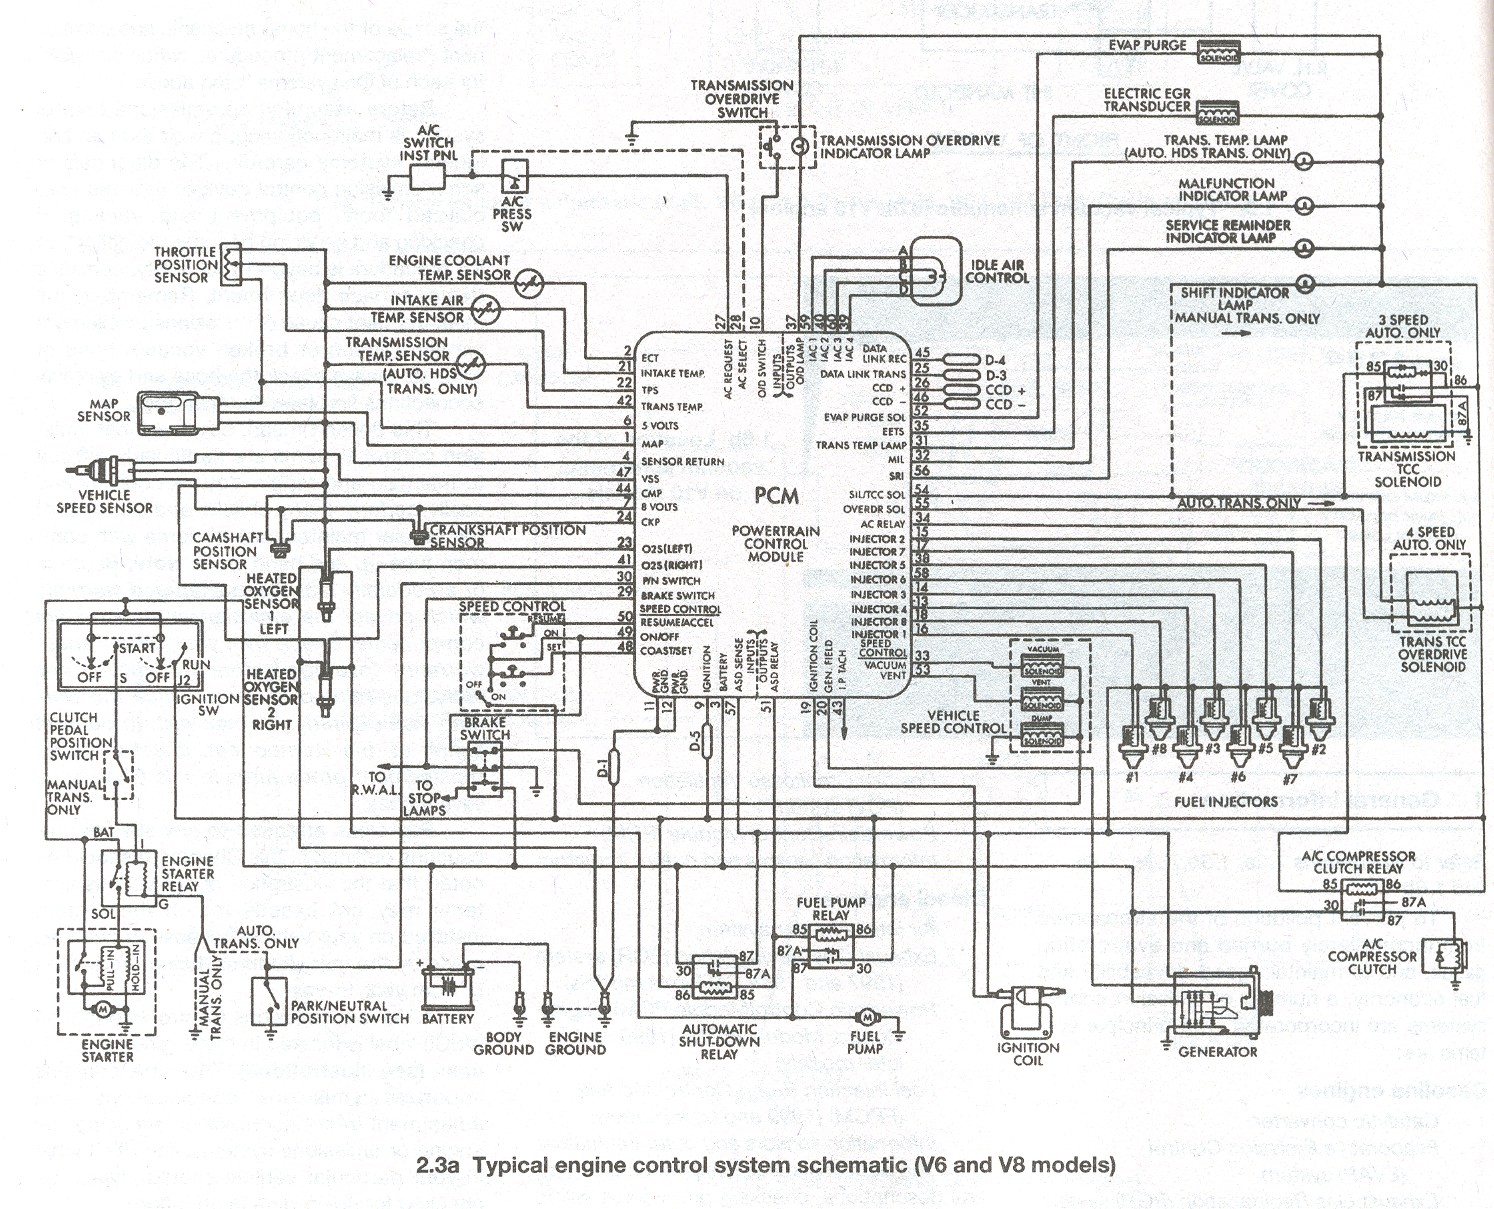 1969 road runner wiring diagram schematic